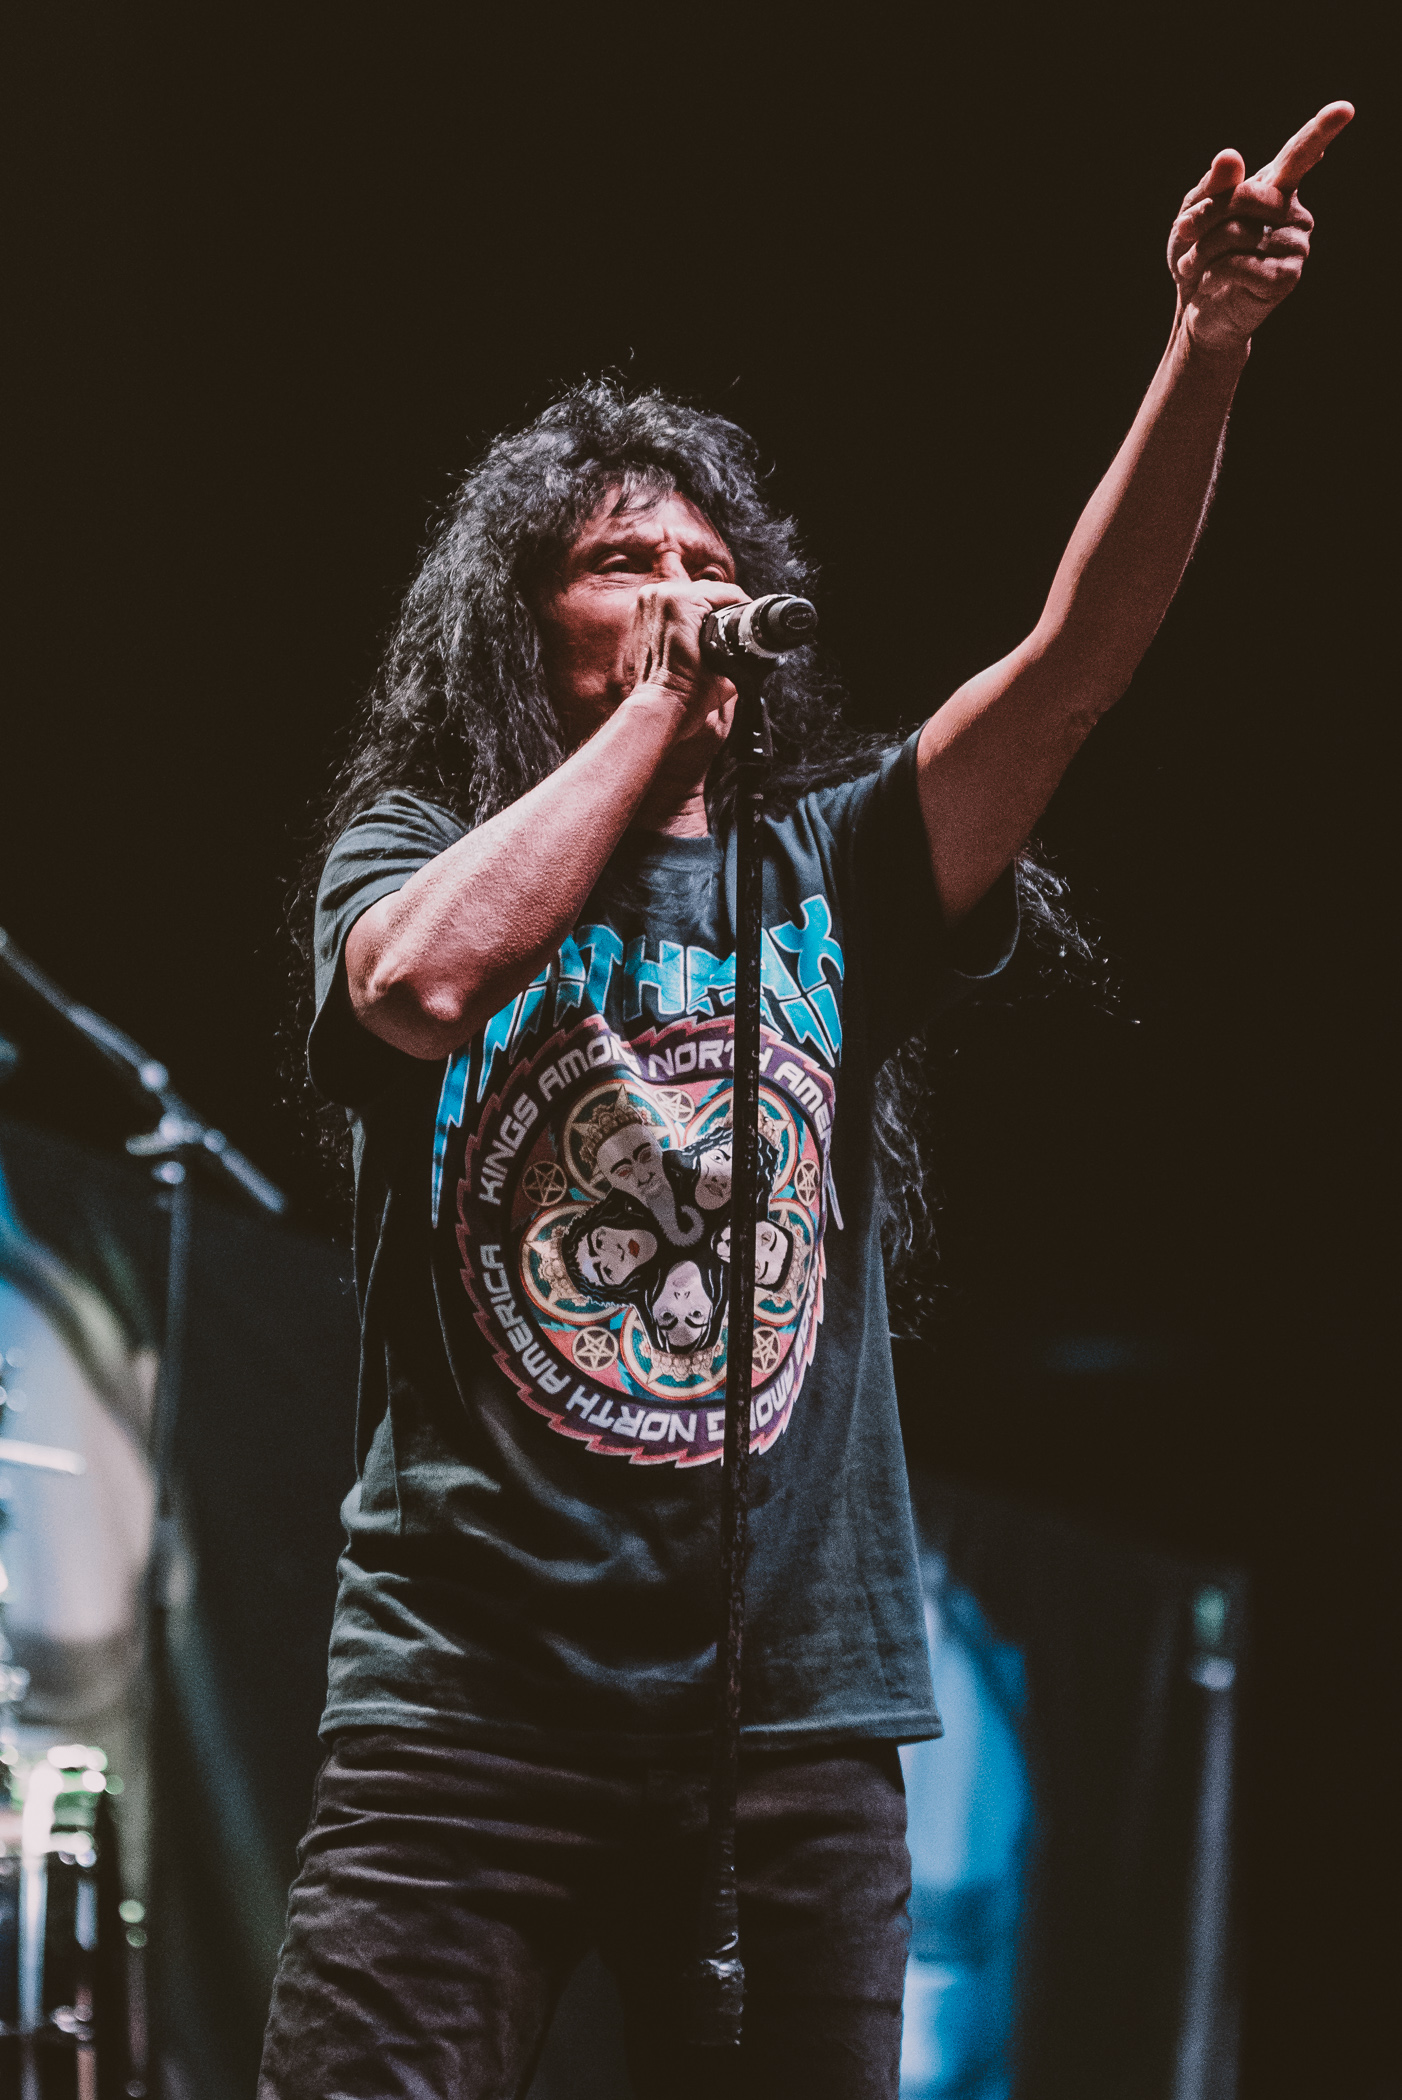 3_Anthrax-Pacific_Coliseum-Timothy_Nguyen-20180516-7.jpg